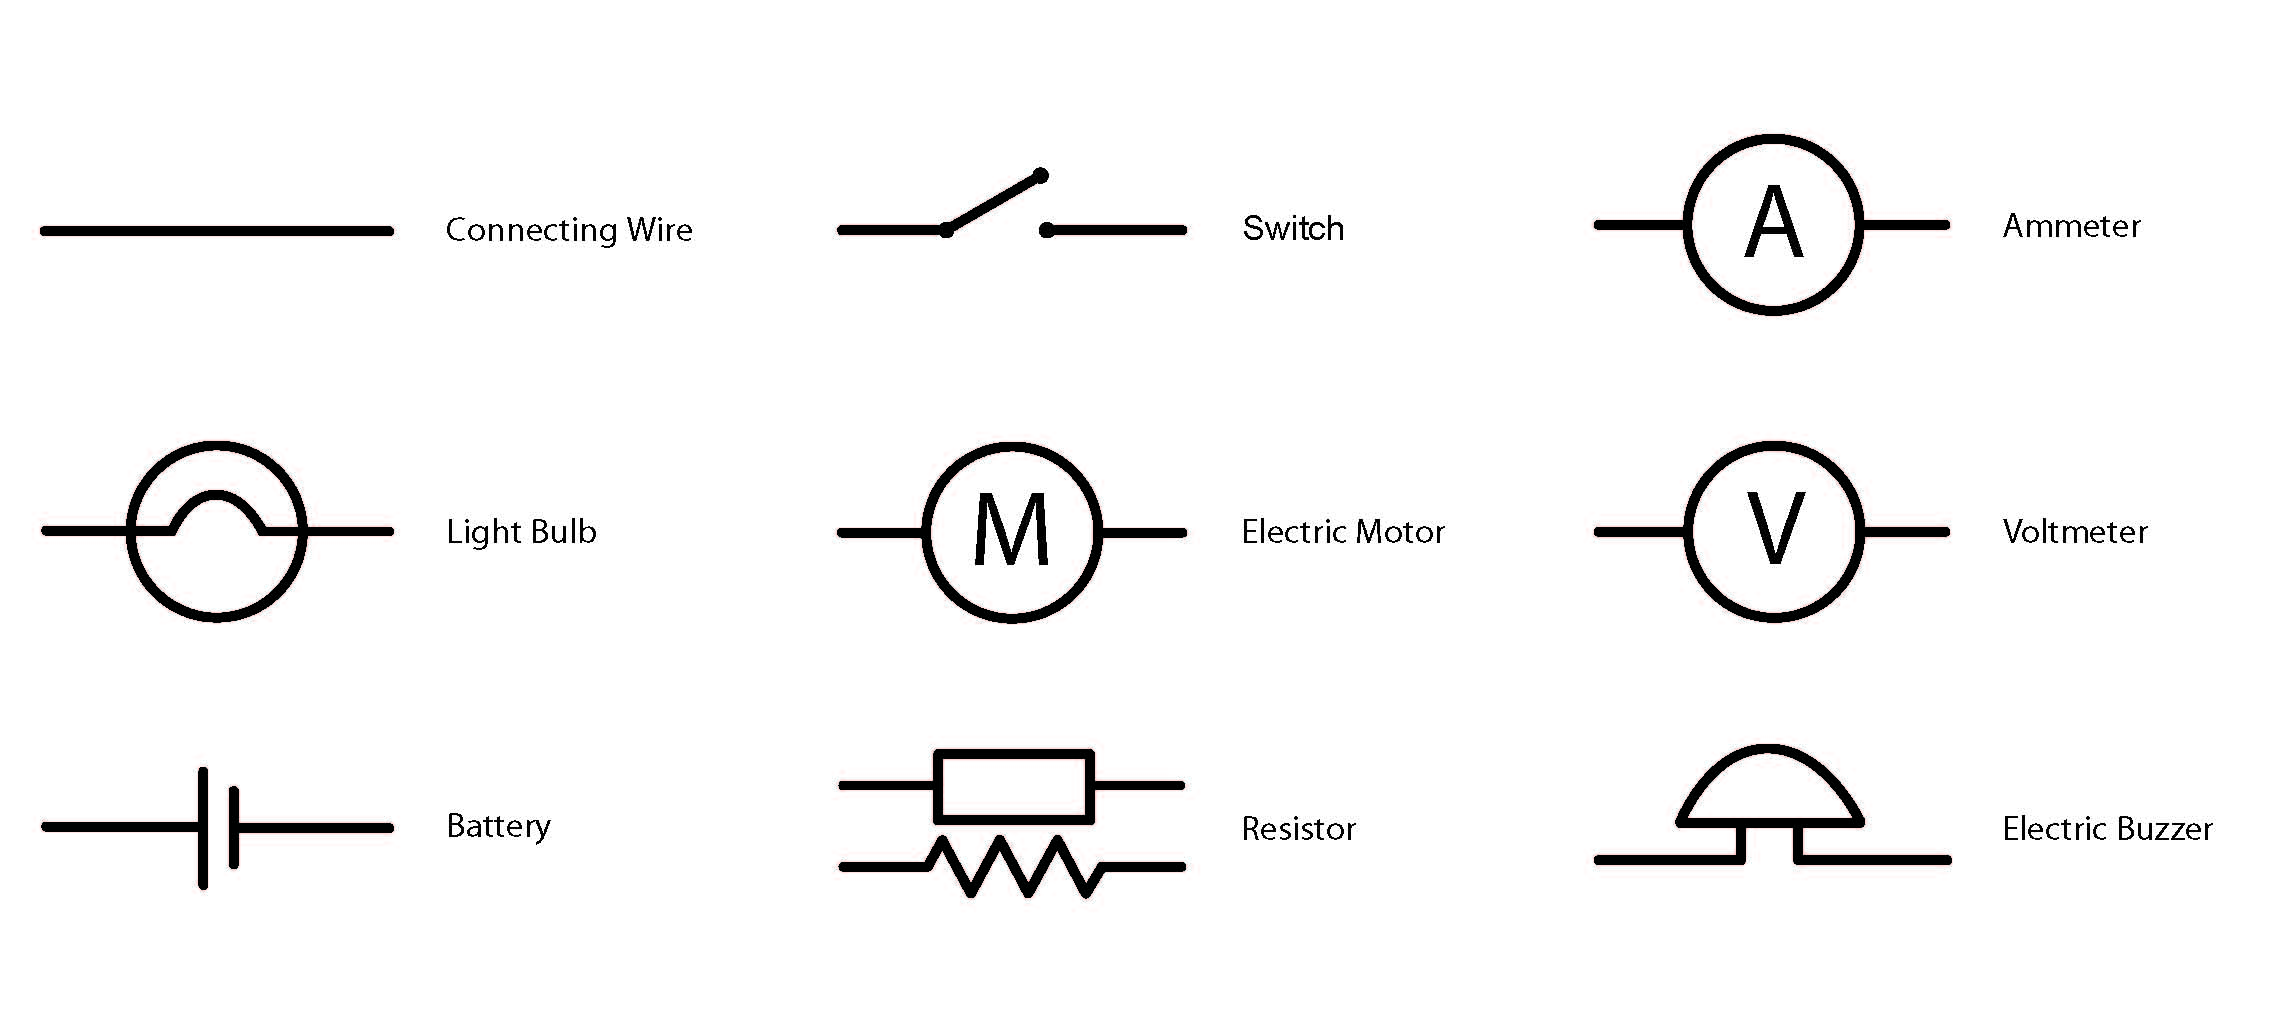 circuits   circuit symbols horizon power horizon wiring a gfci outlet to another outlet Wiring Outlets and Lightd